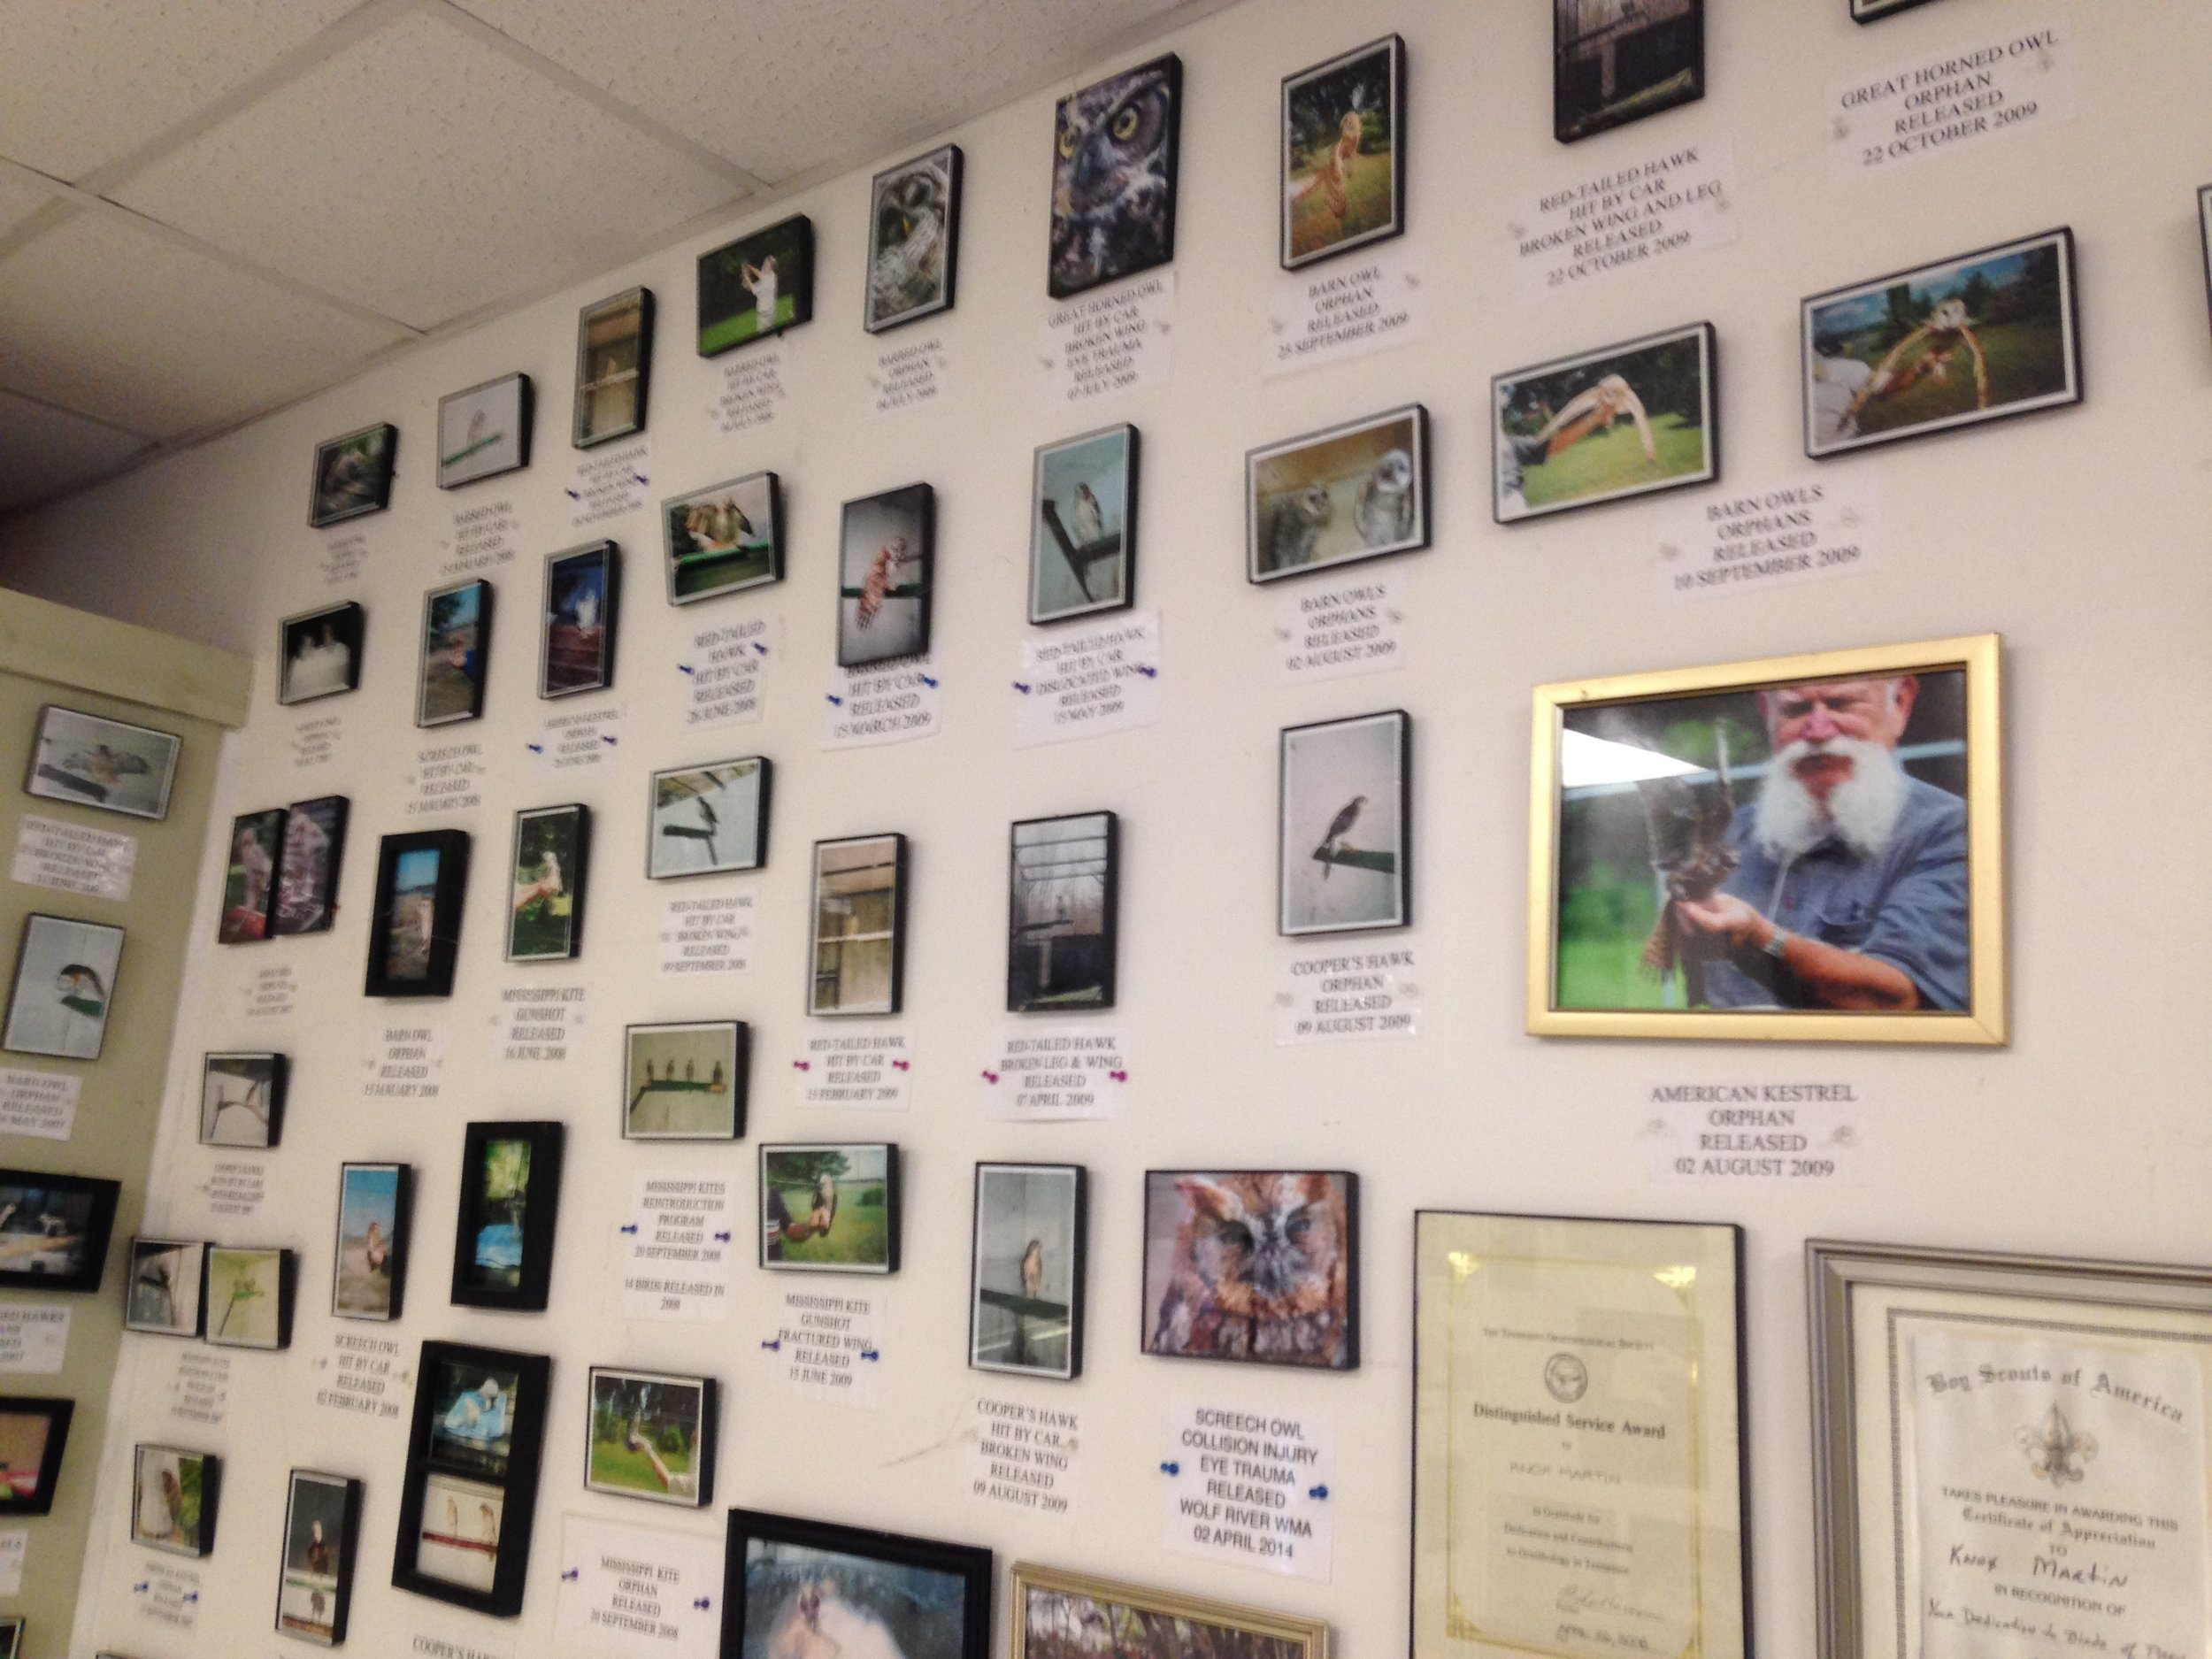 Wall of Fame showing some favorites over the years